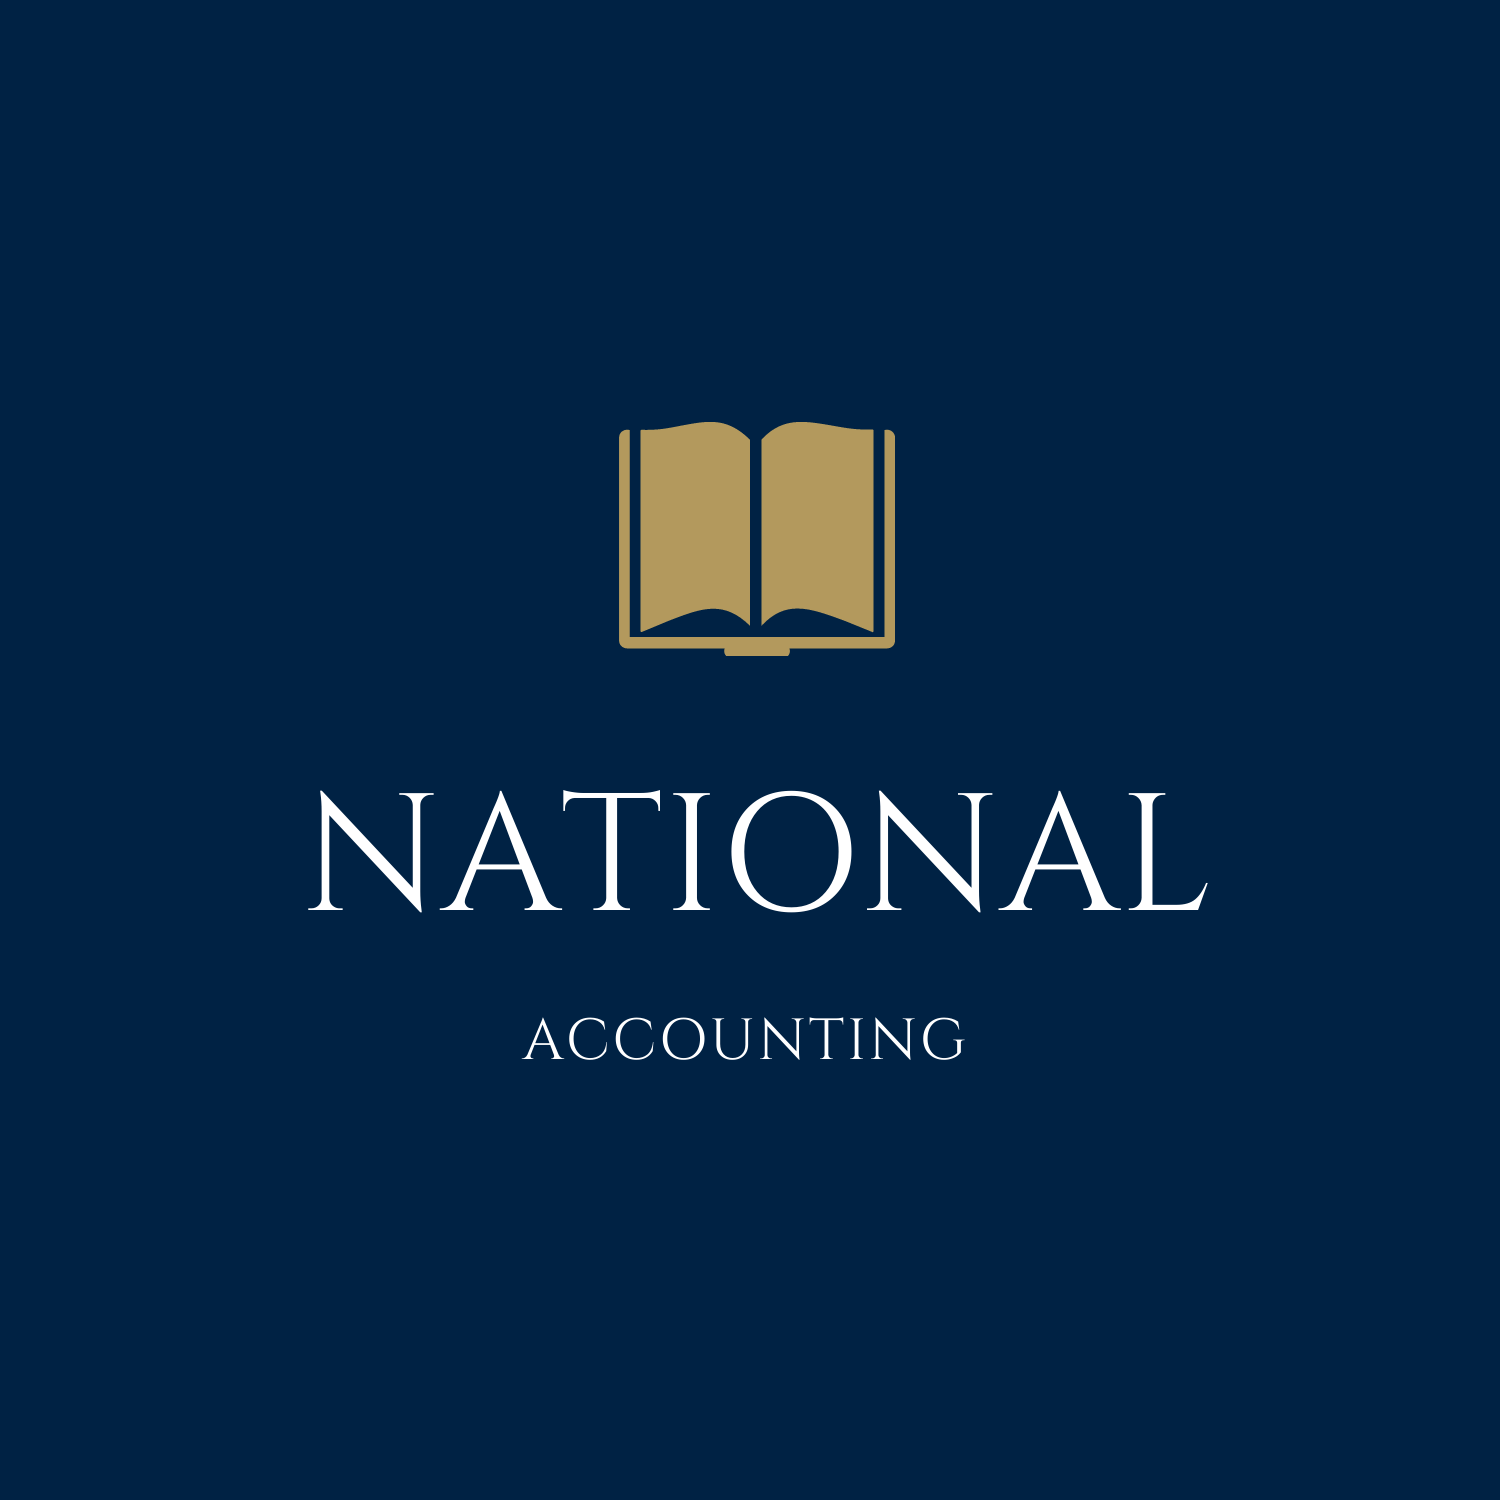 Online Training on National Accounting